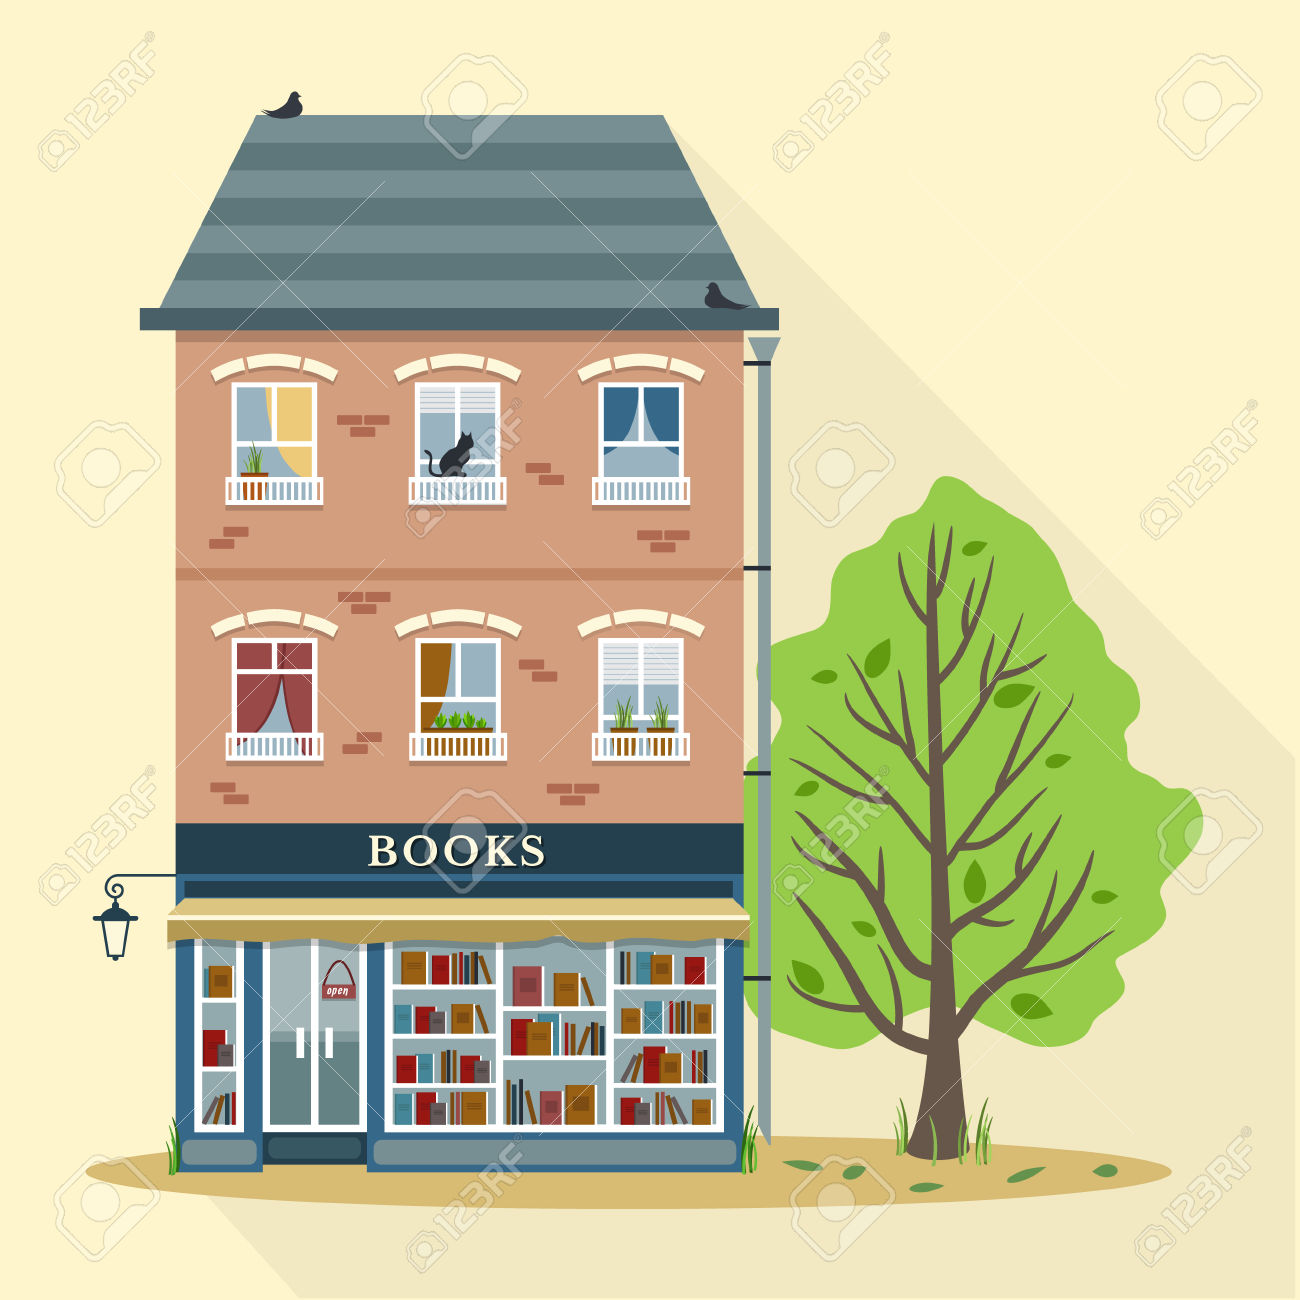 Summer. Flat Style Retro House With Books Shop On First Floor.